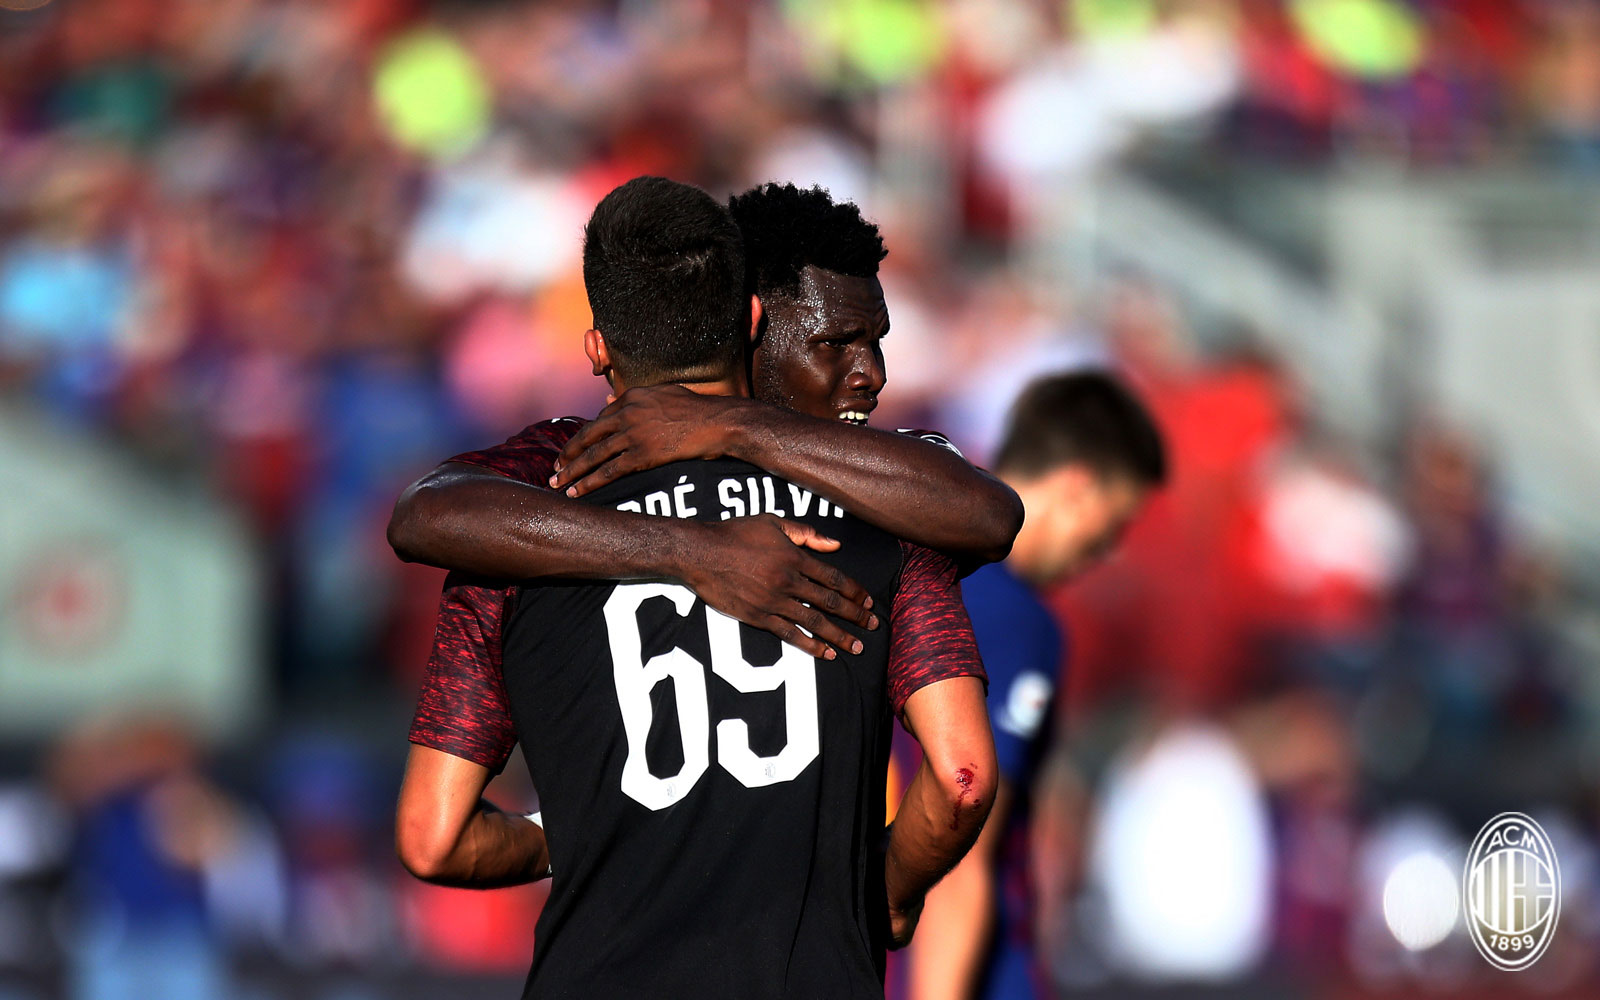 André Silva and Franck Kessié celebrating during Barcelona-Milan at Levi's Stadium on August 5, 2018. (@acmilan.com)